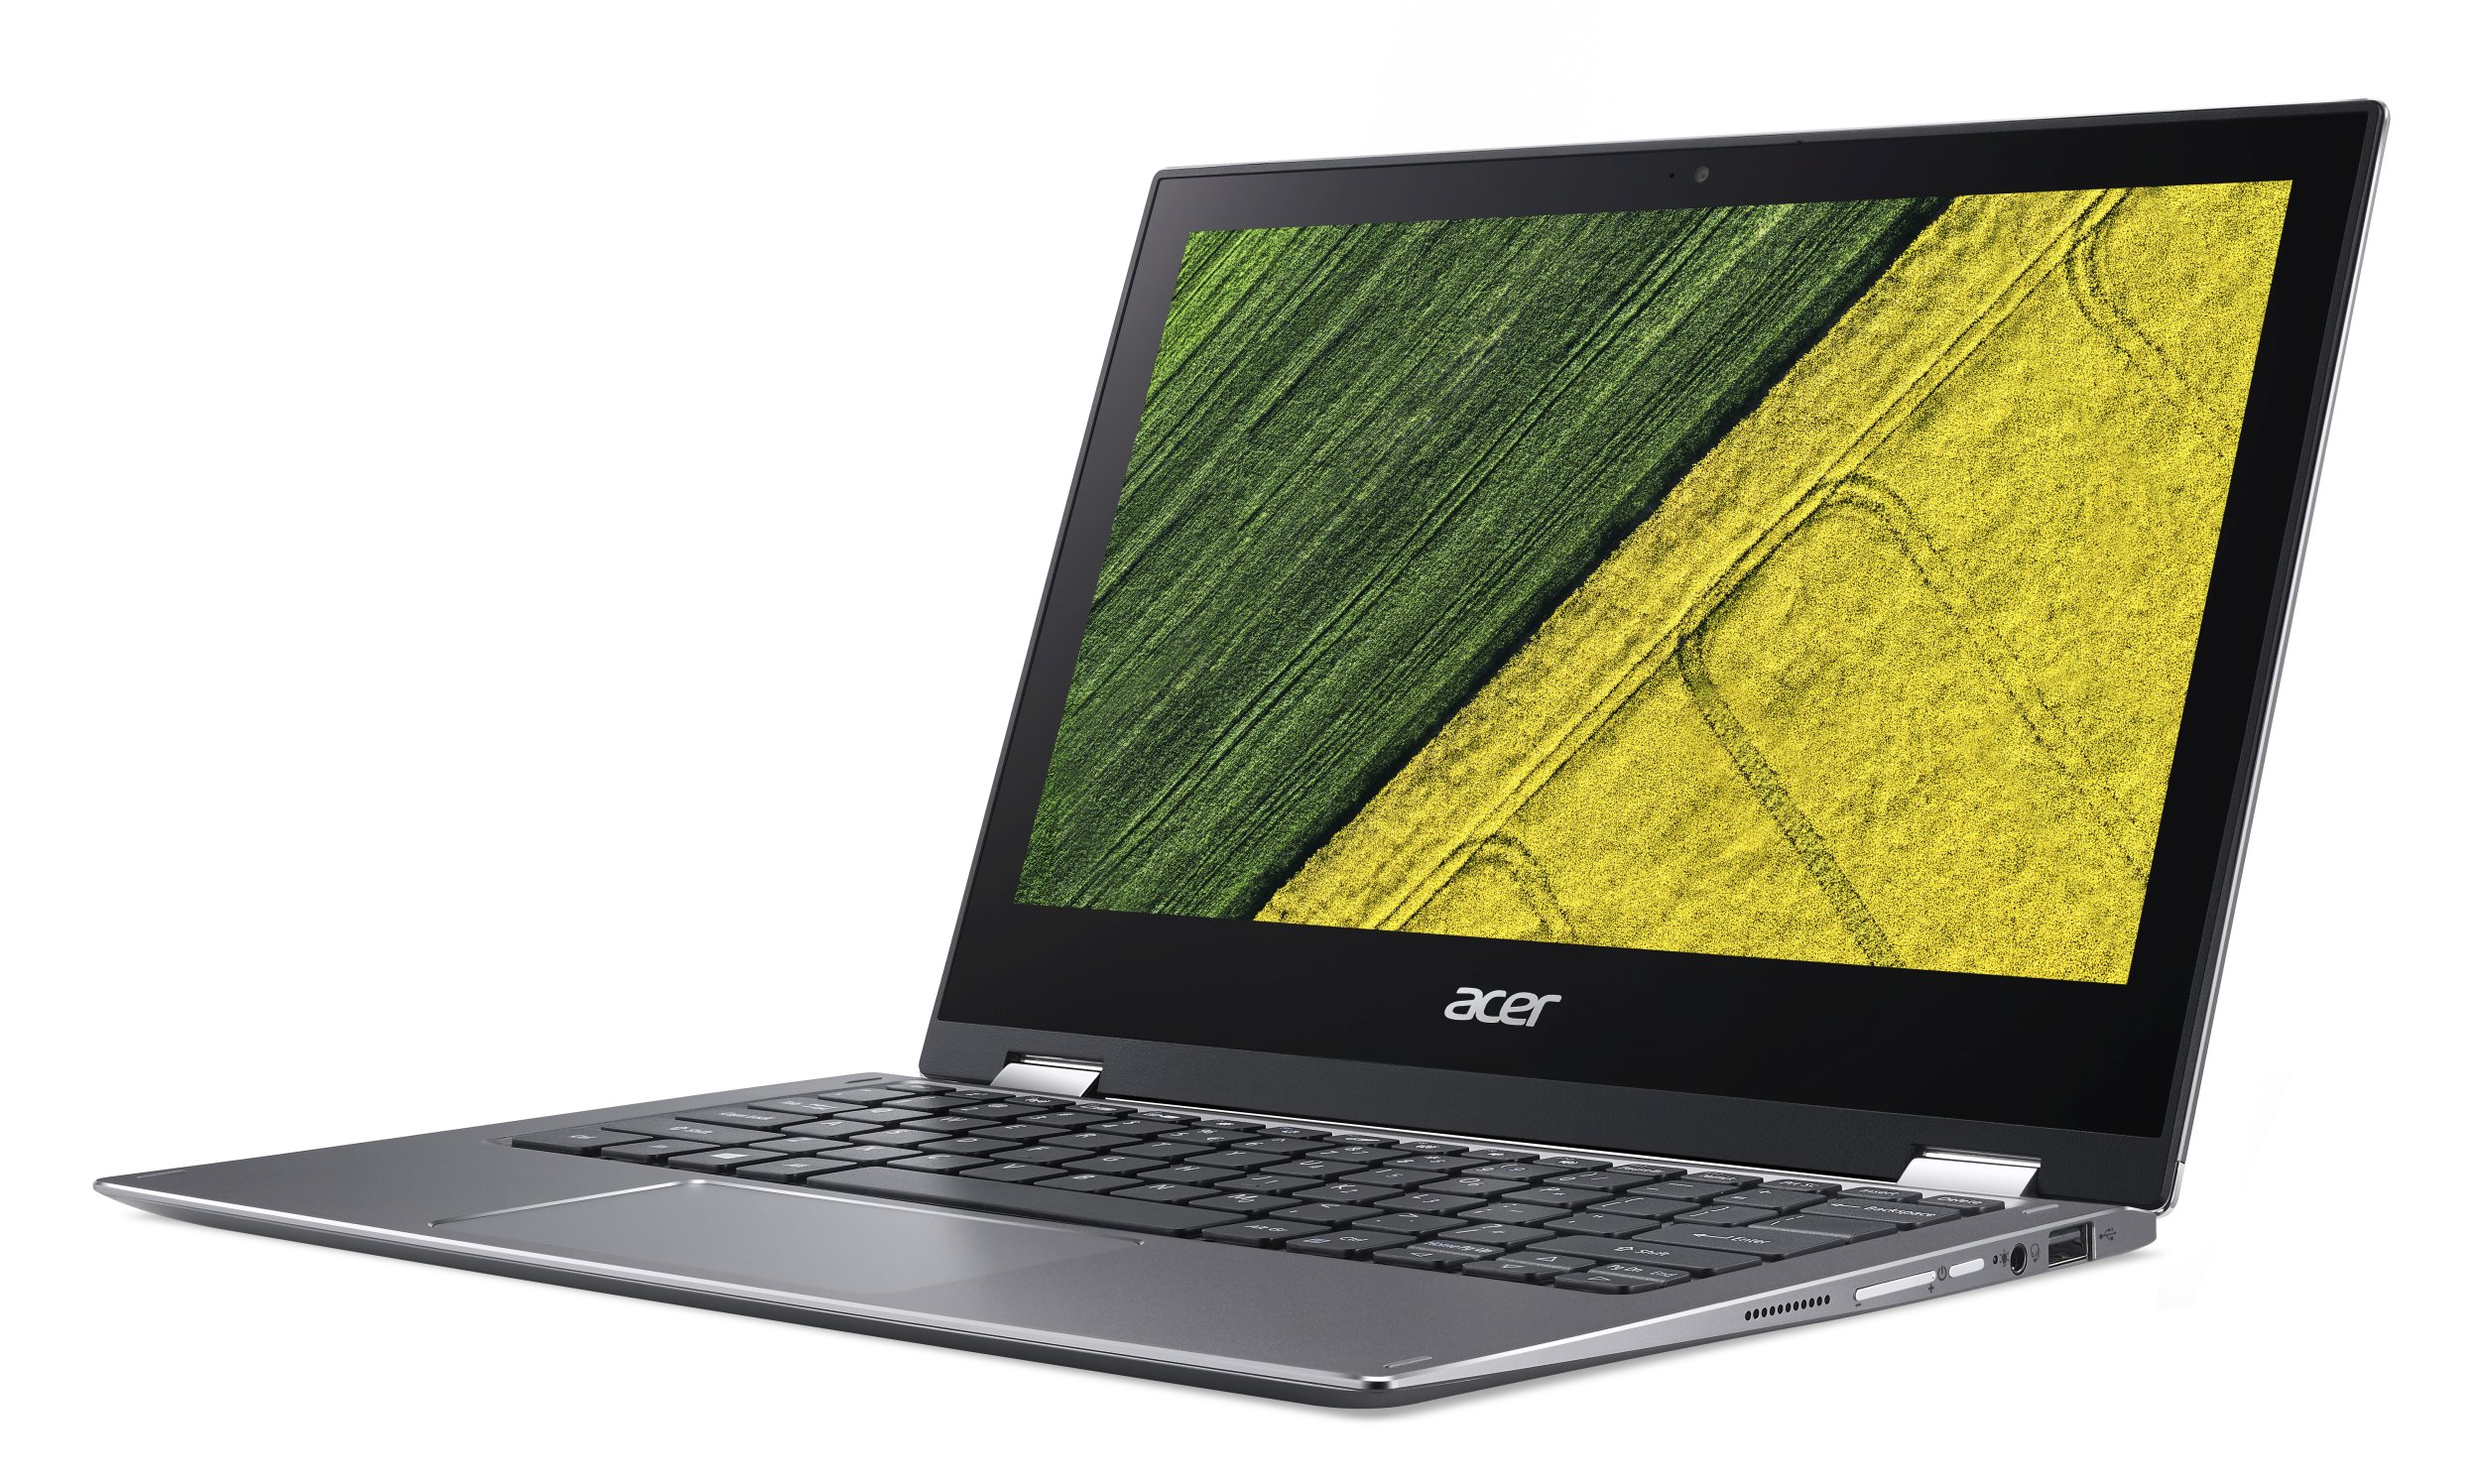 Acer Spin 1 11,6/N3350/4G/32GB/W10